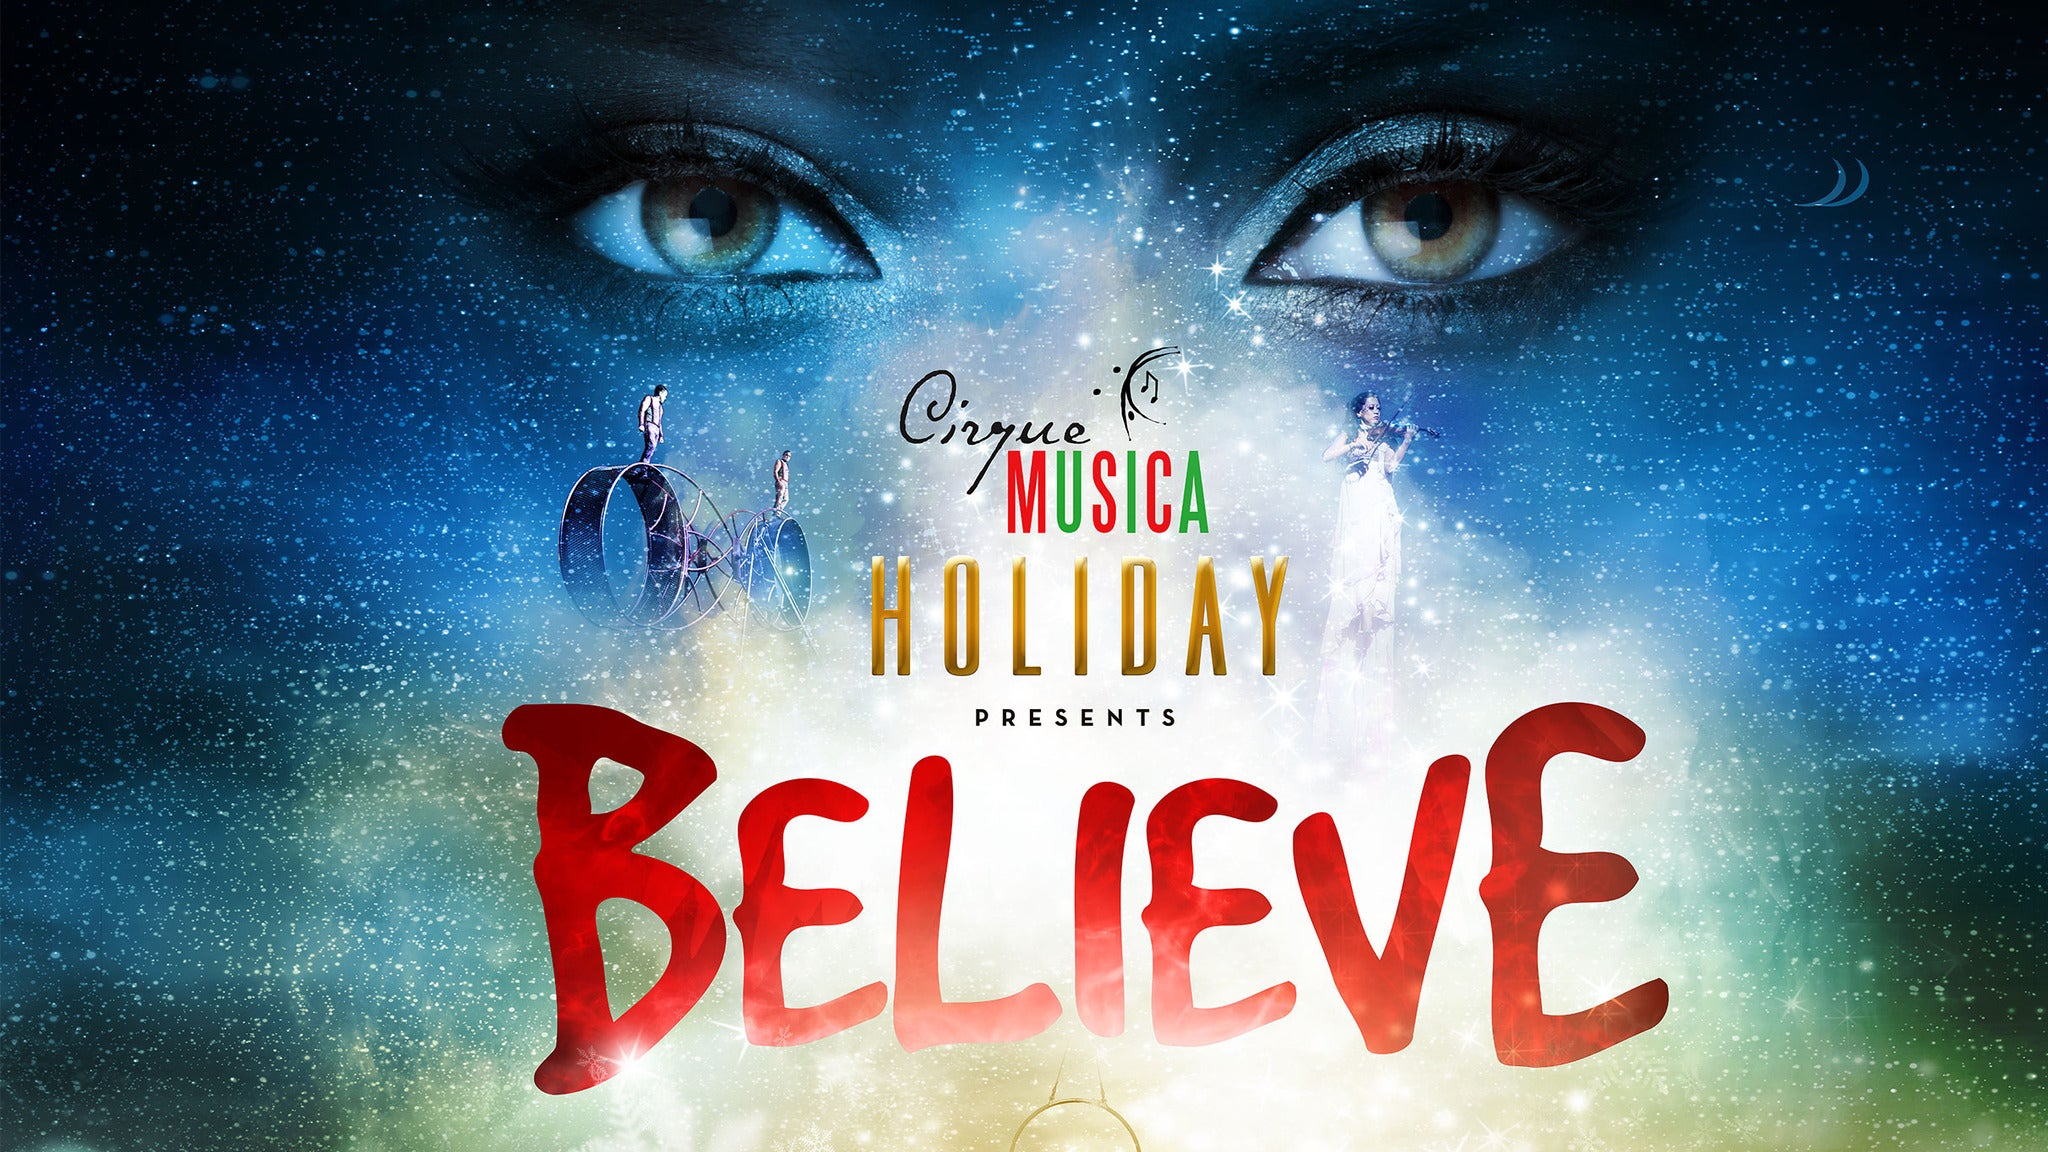 Cirque Musica Holiday presents BELIEVE - Cedar Rapids, IA 52401